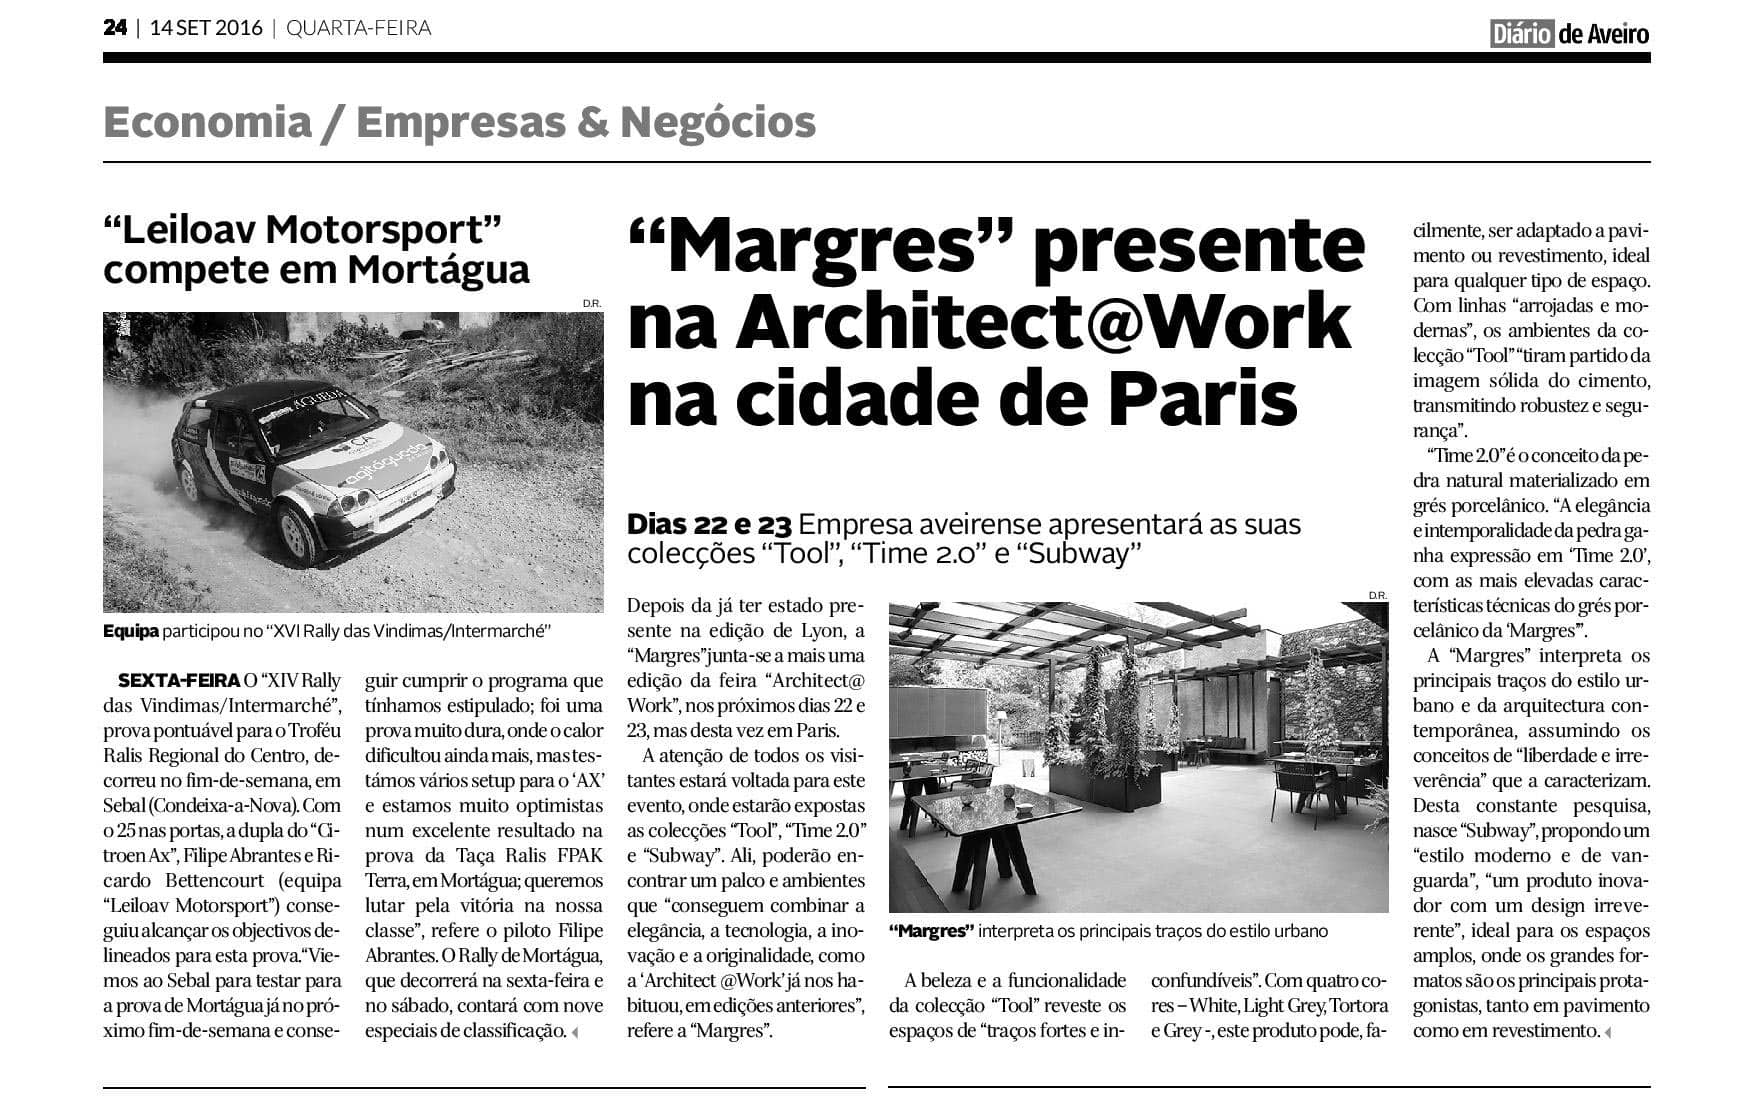 Margres na Architect @Work Paris